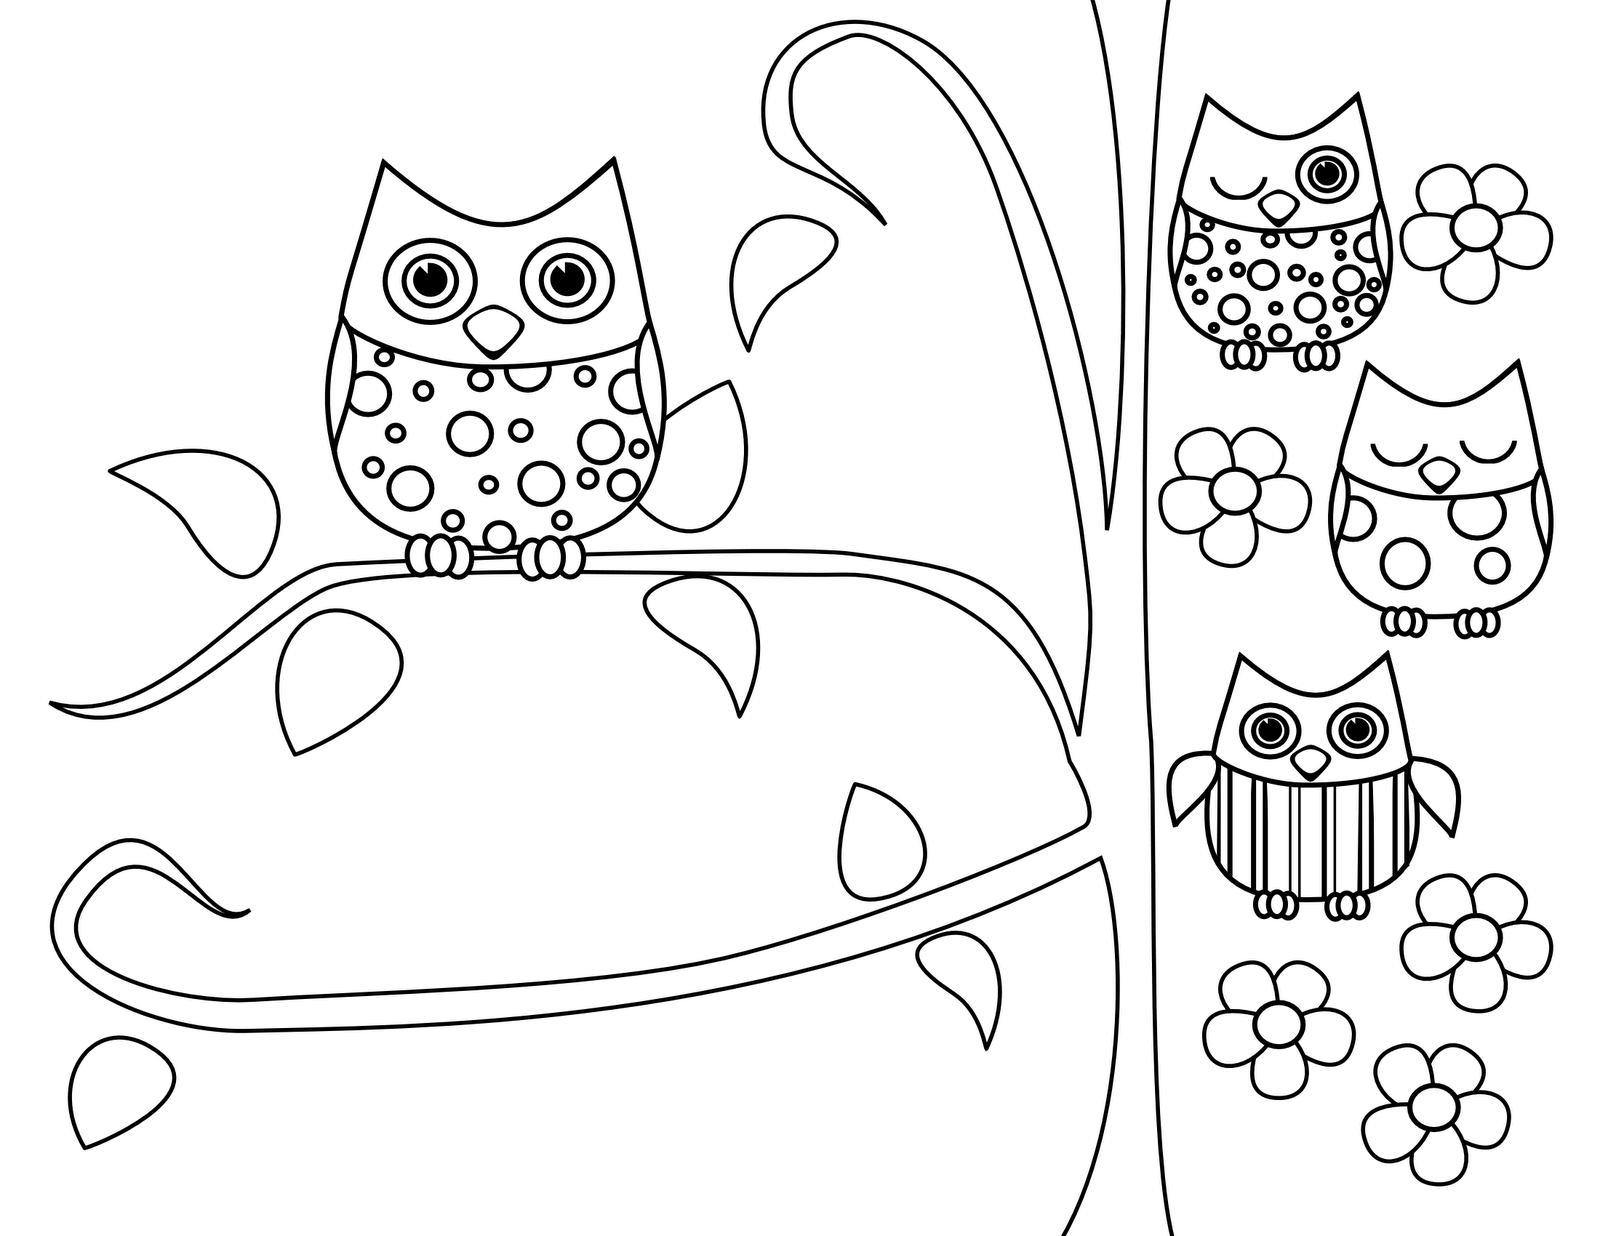 1600x1236 Coloring Pages Endearing Coloring Pages Draw An Owl Coloring